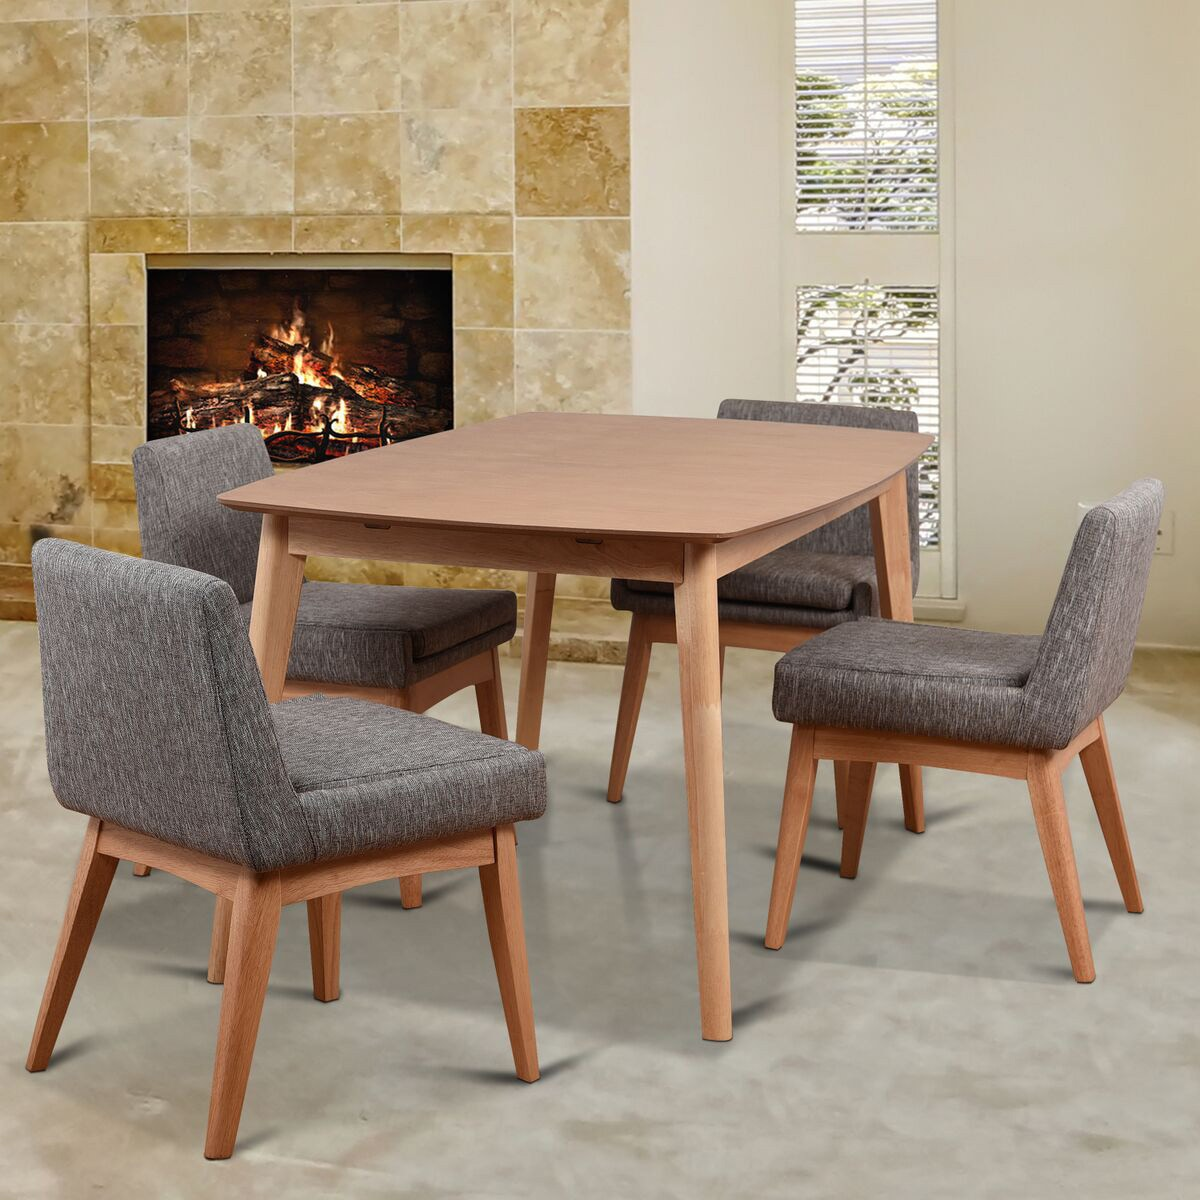 Shop Ruby Mid Century 5 Piece Natural Living Room Dining Set Coral